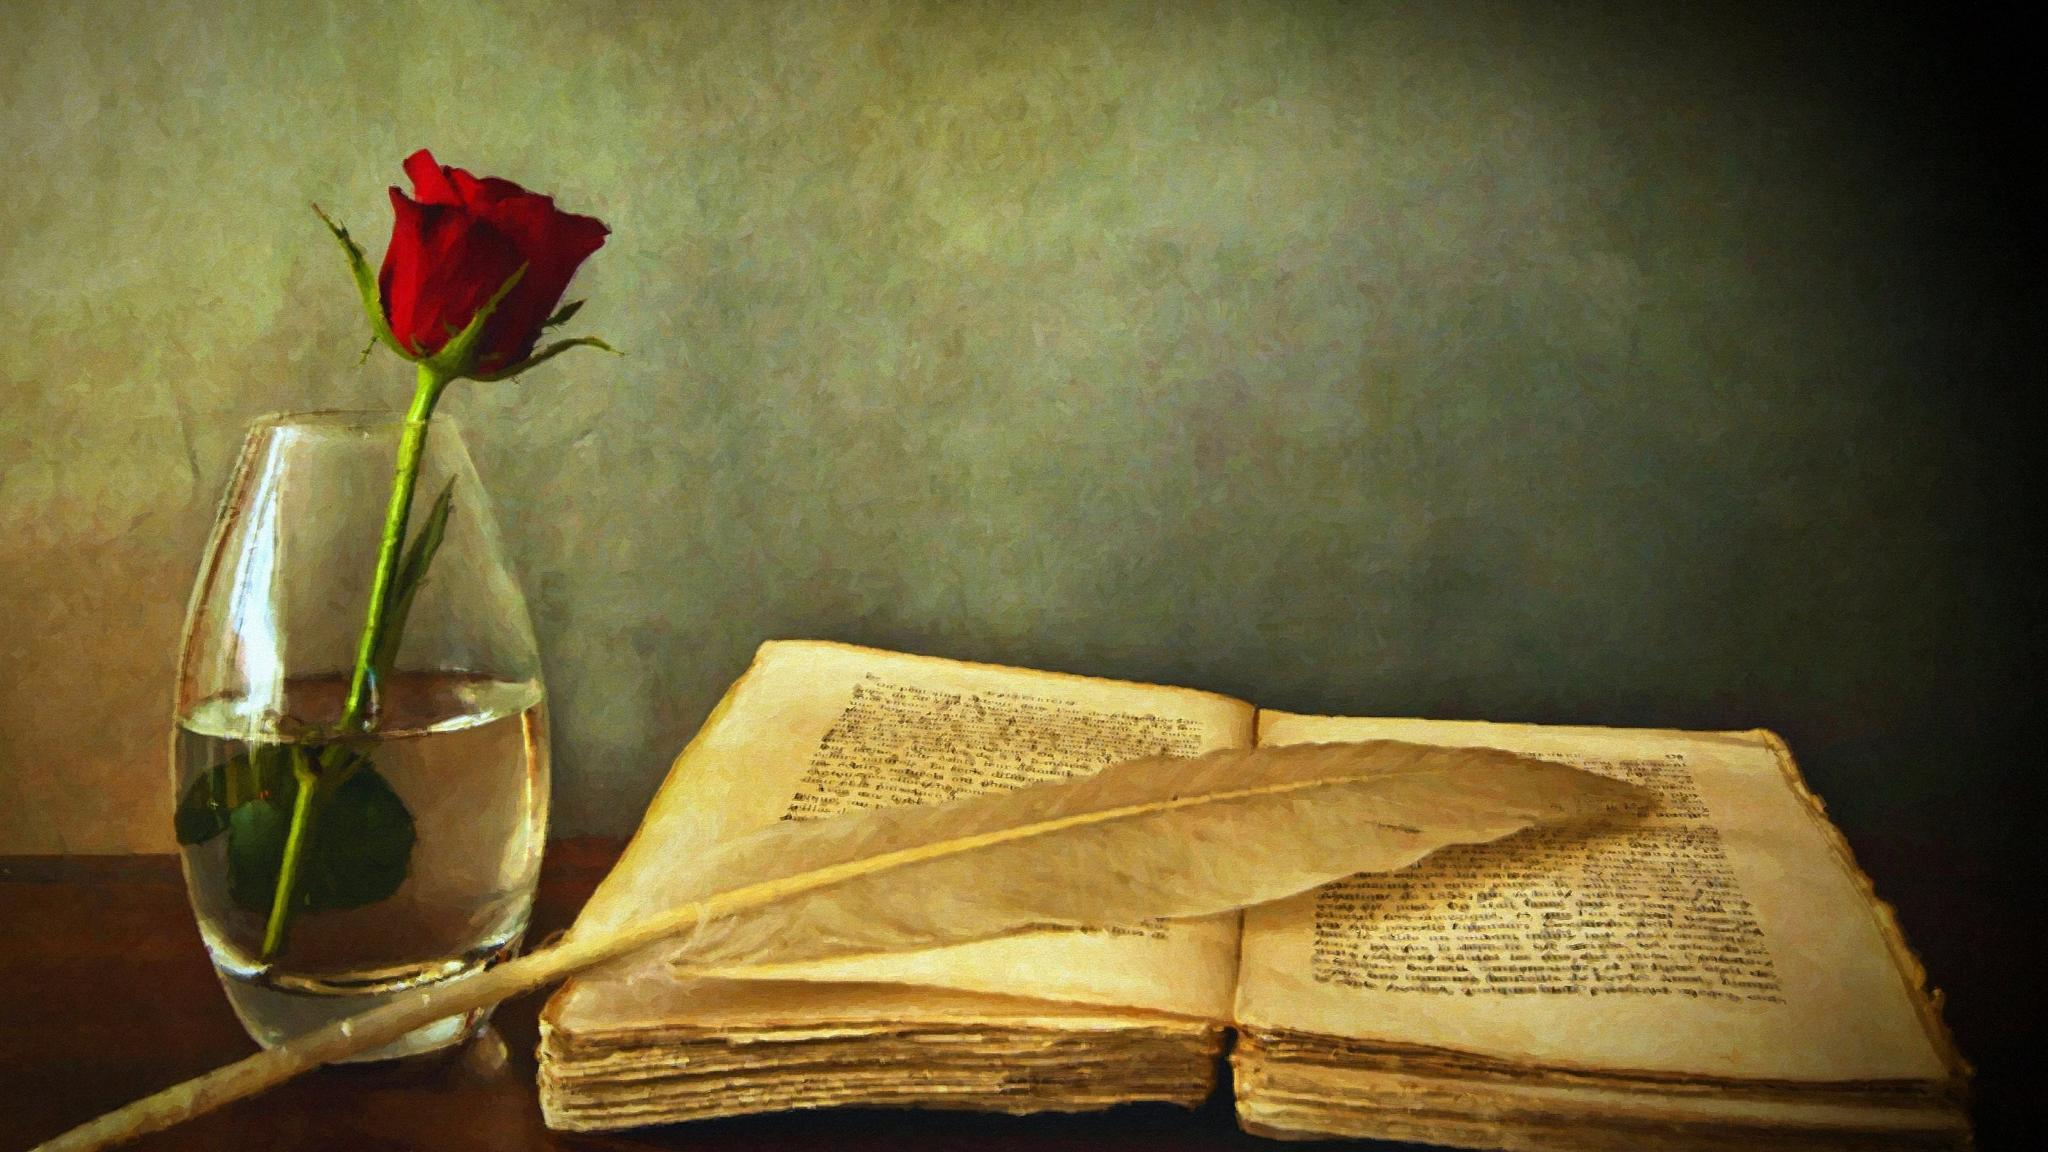 Still life of a beautiful old book and a rose in a wineglass